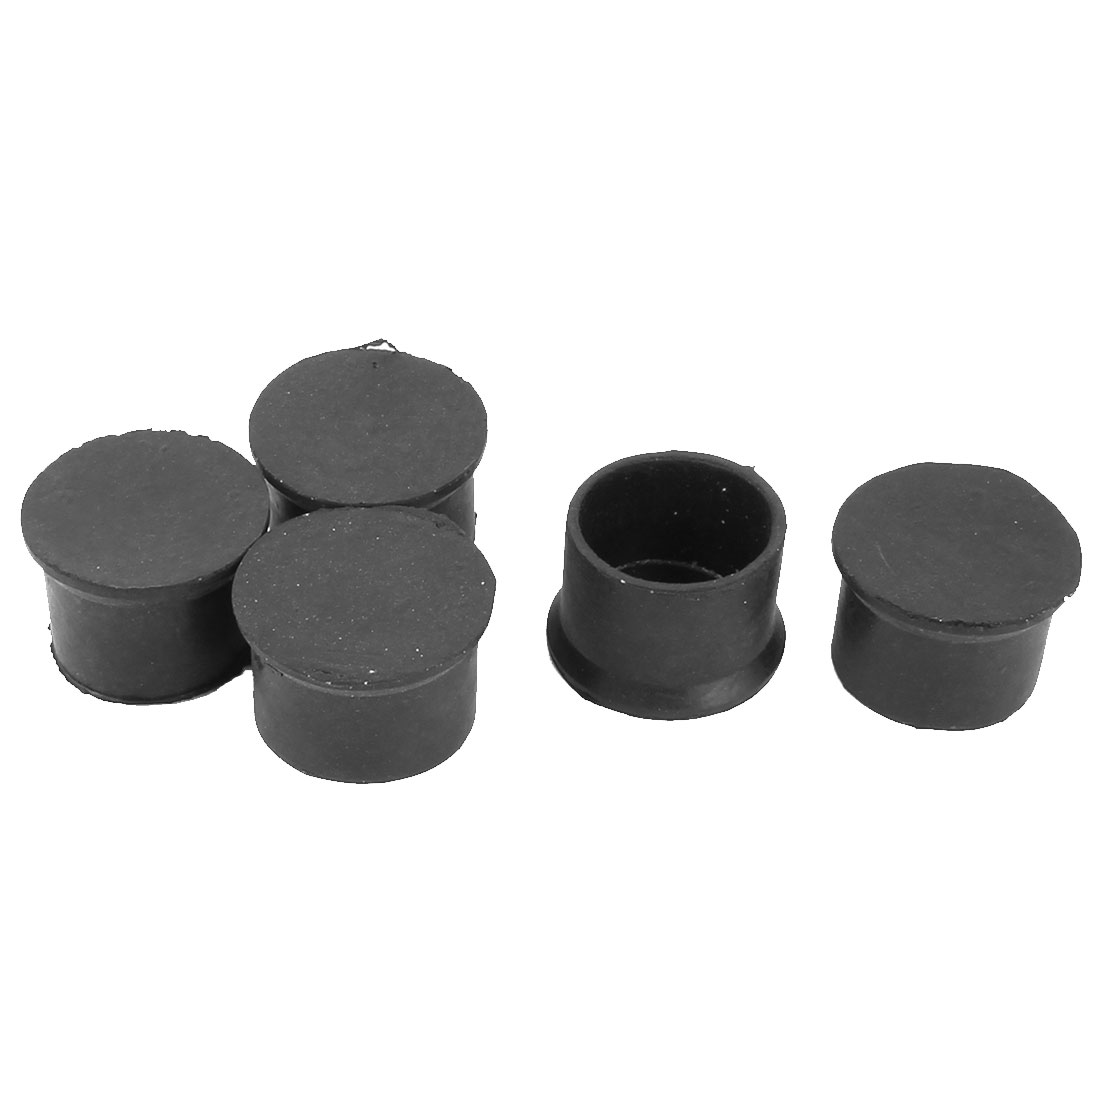 Rubber Round Furniture Chair Table Bottom Protector Feet Leg End Tip Black 50mm Inner Dia 5pcs